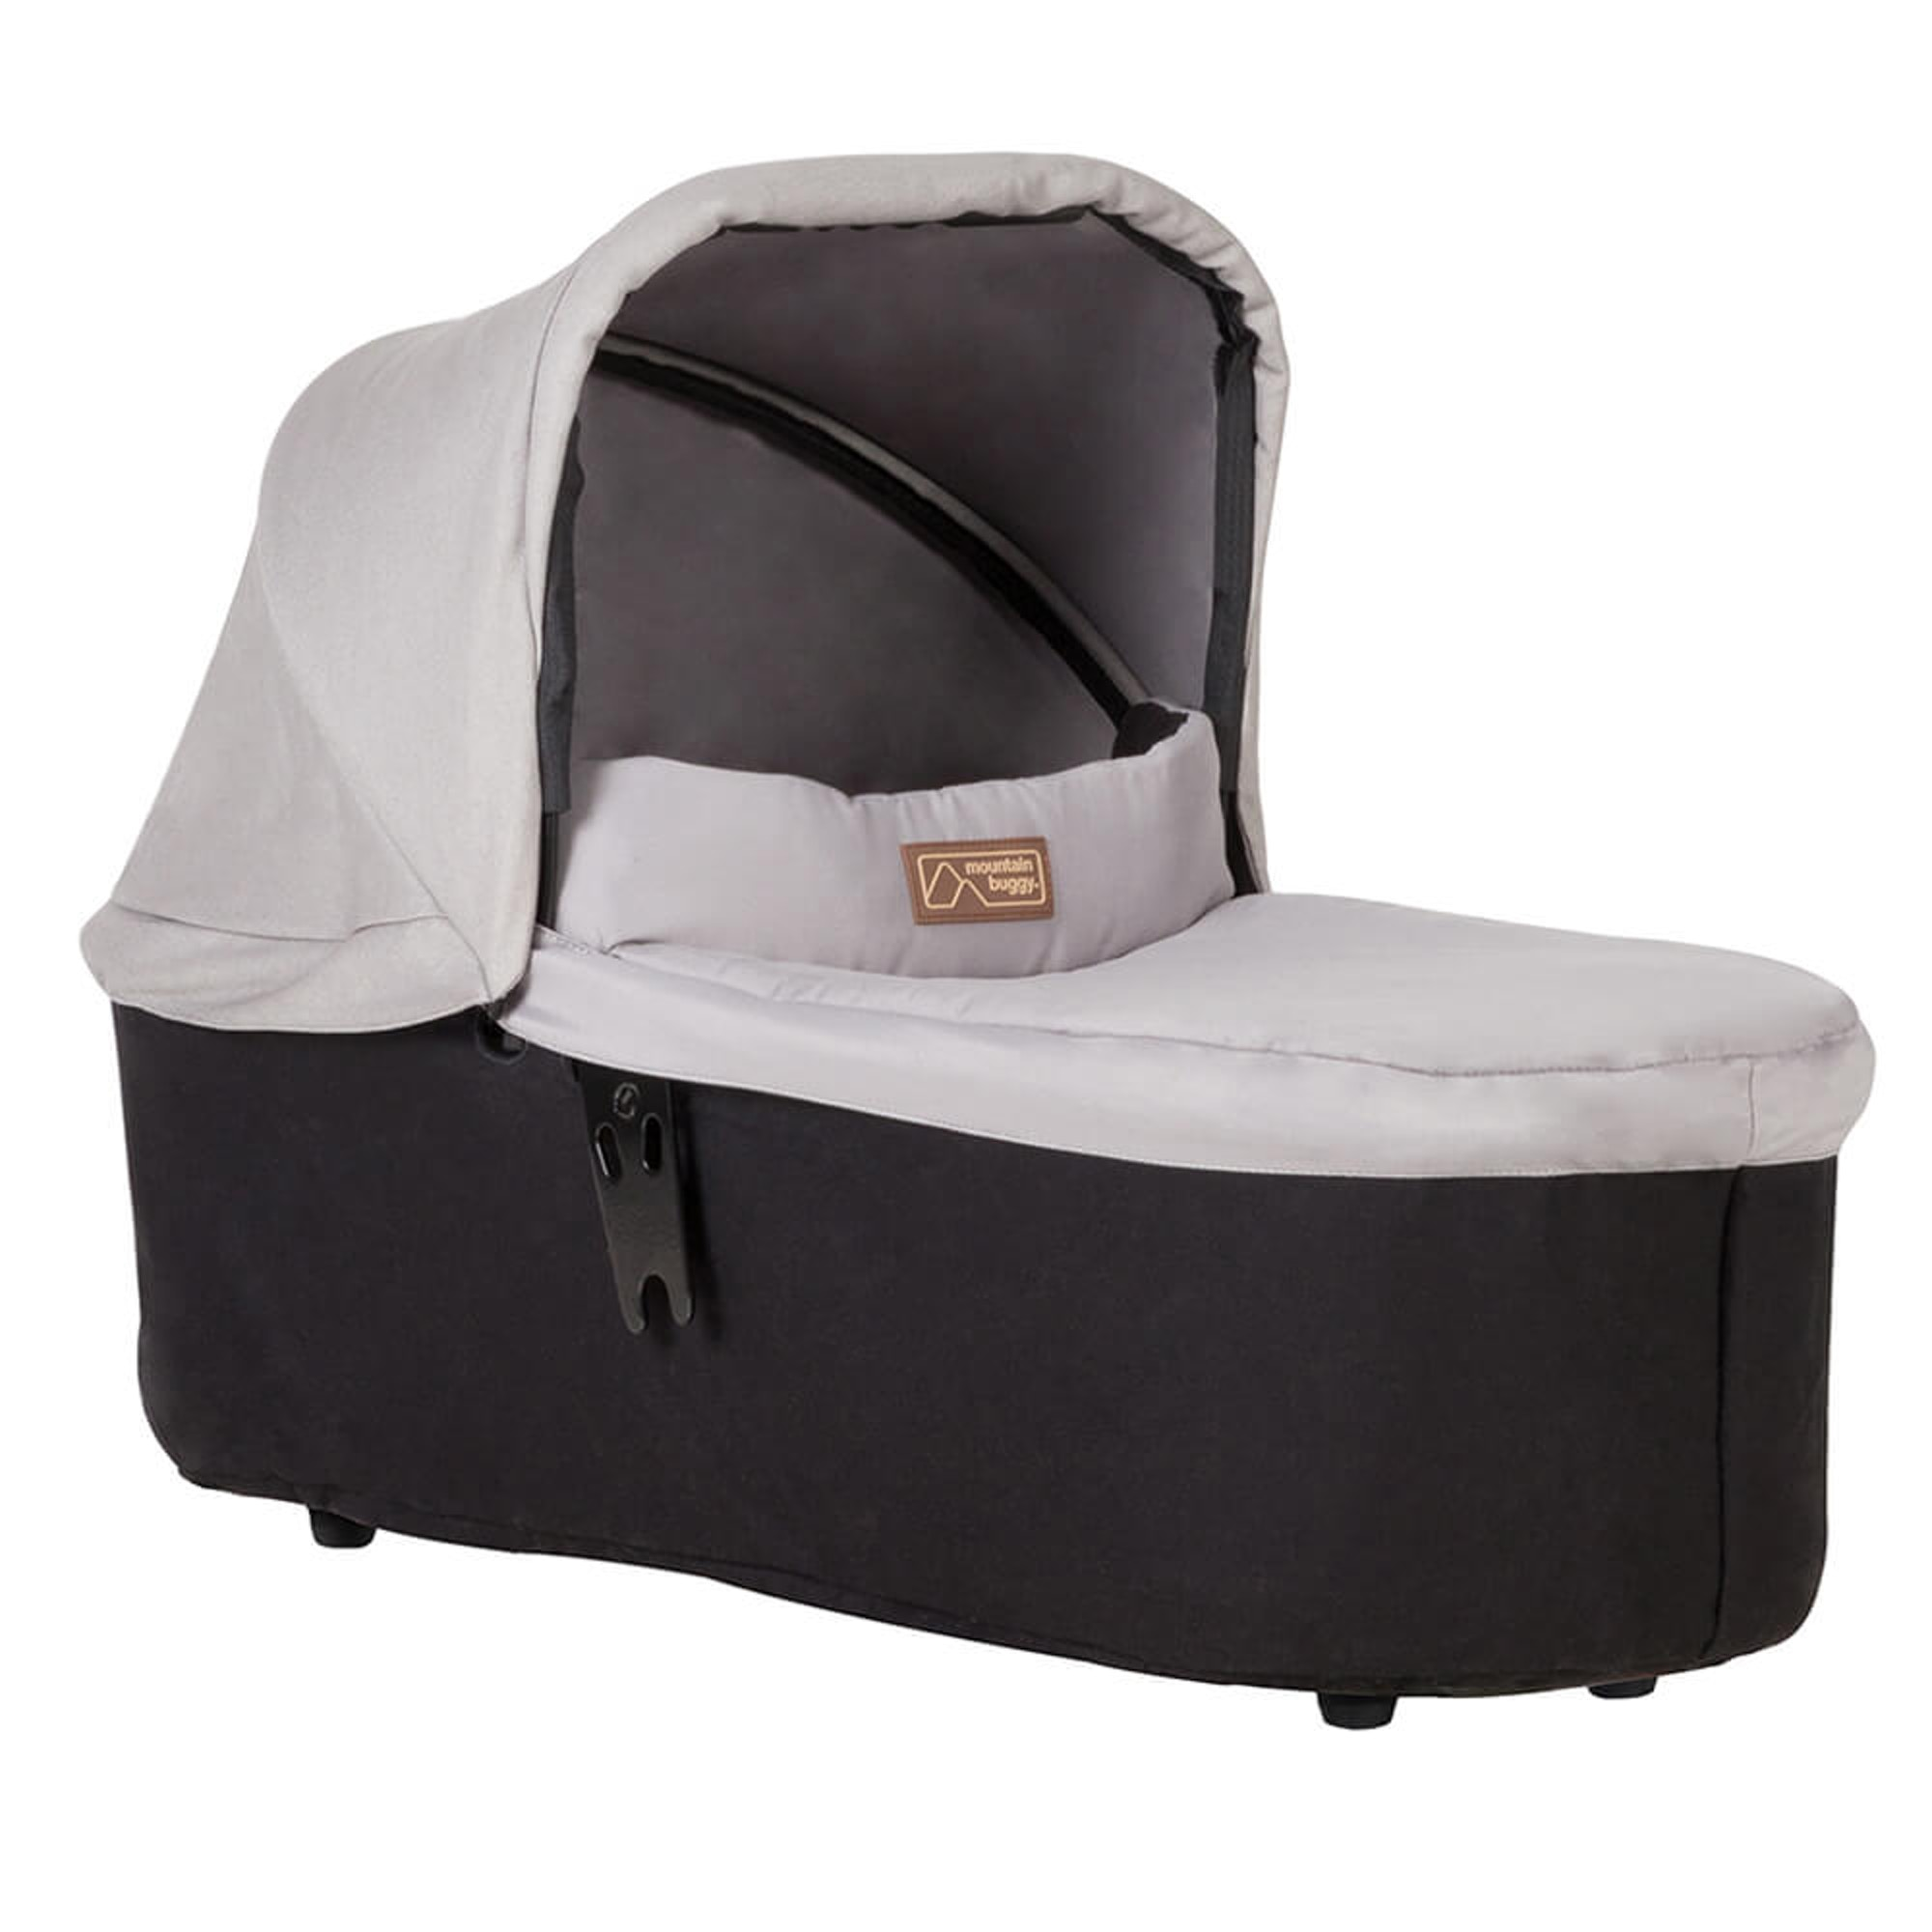 Mountain Buggy Carrycot Plus For Terrain Urban Jungle Baby Village